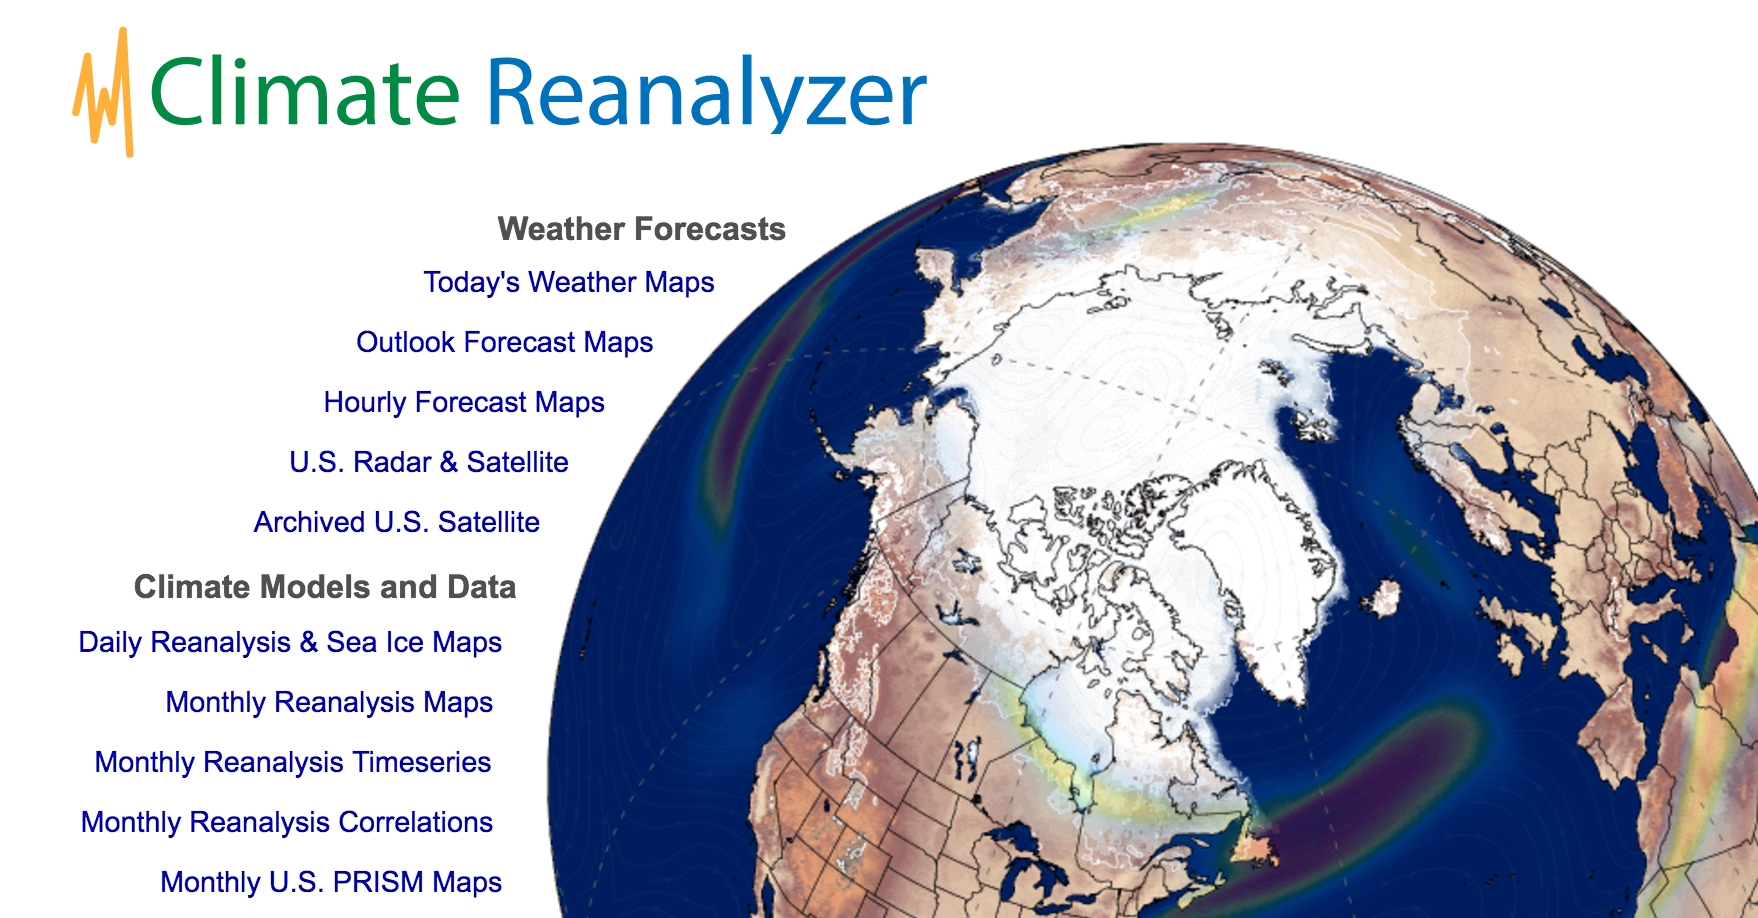 Data Visualization using Climate Reanalyzer